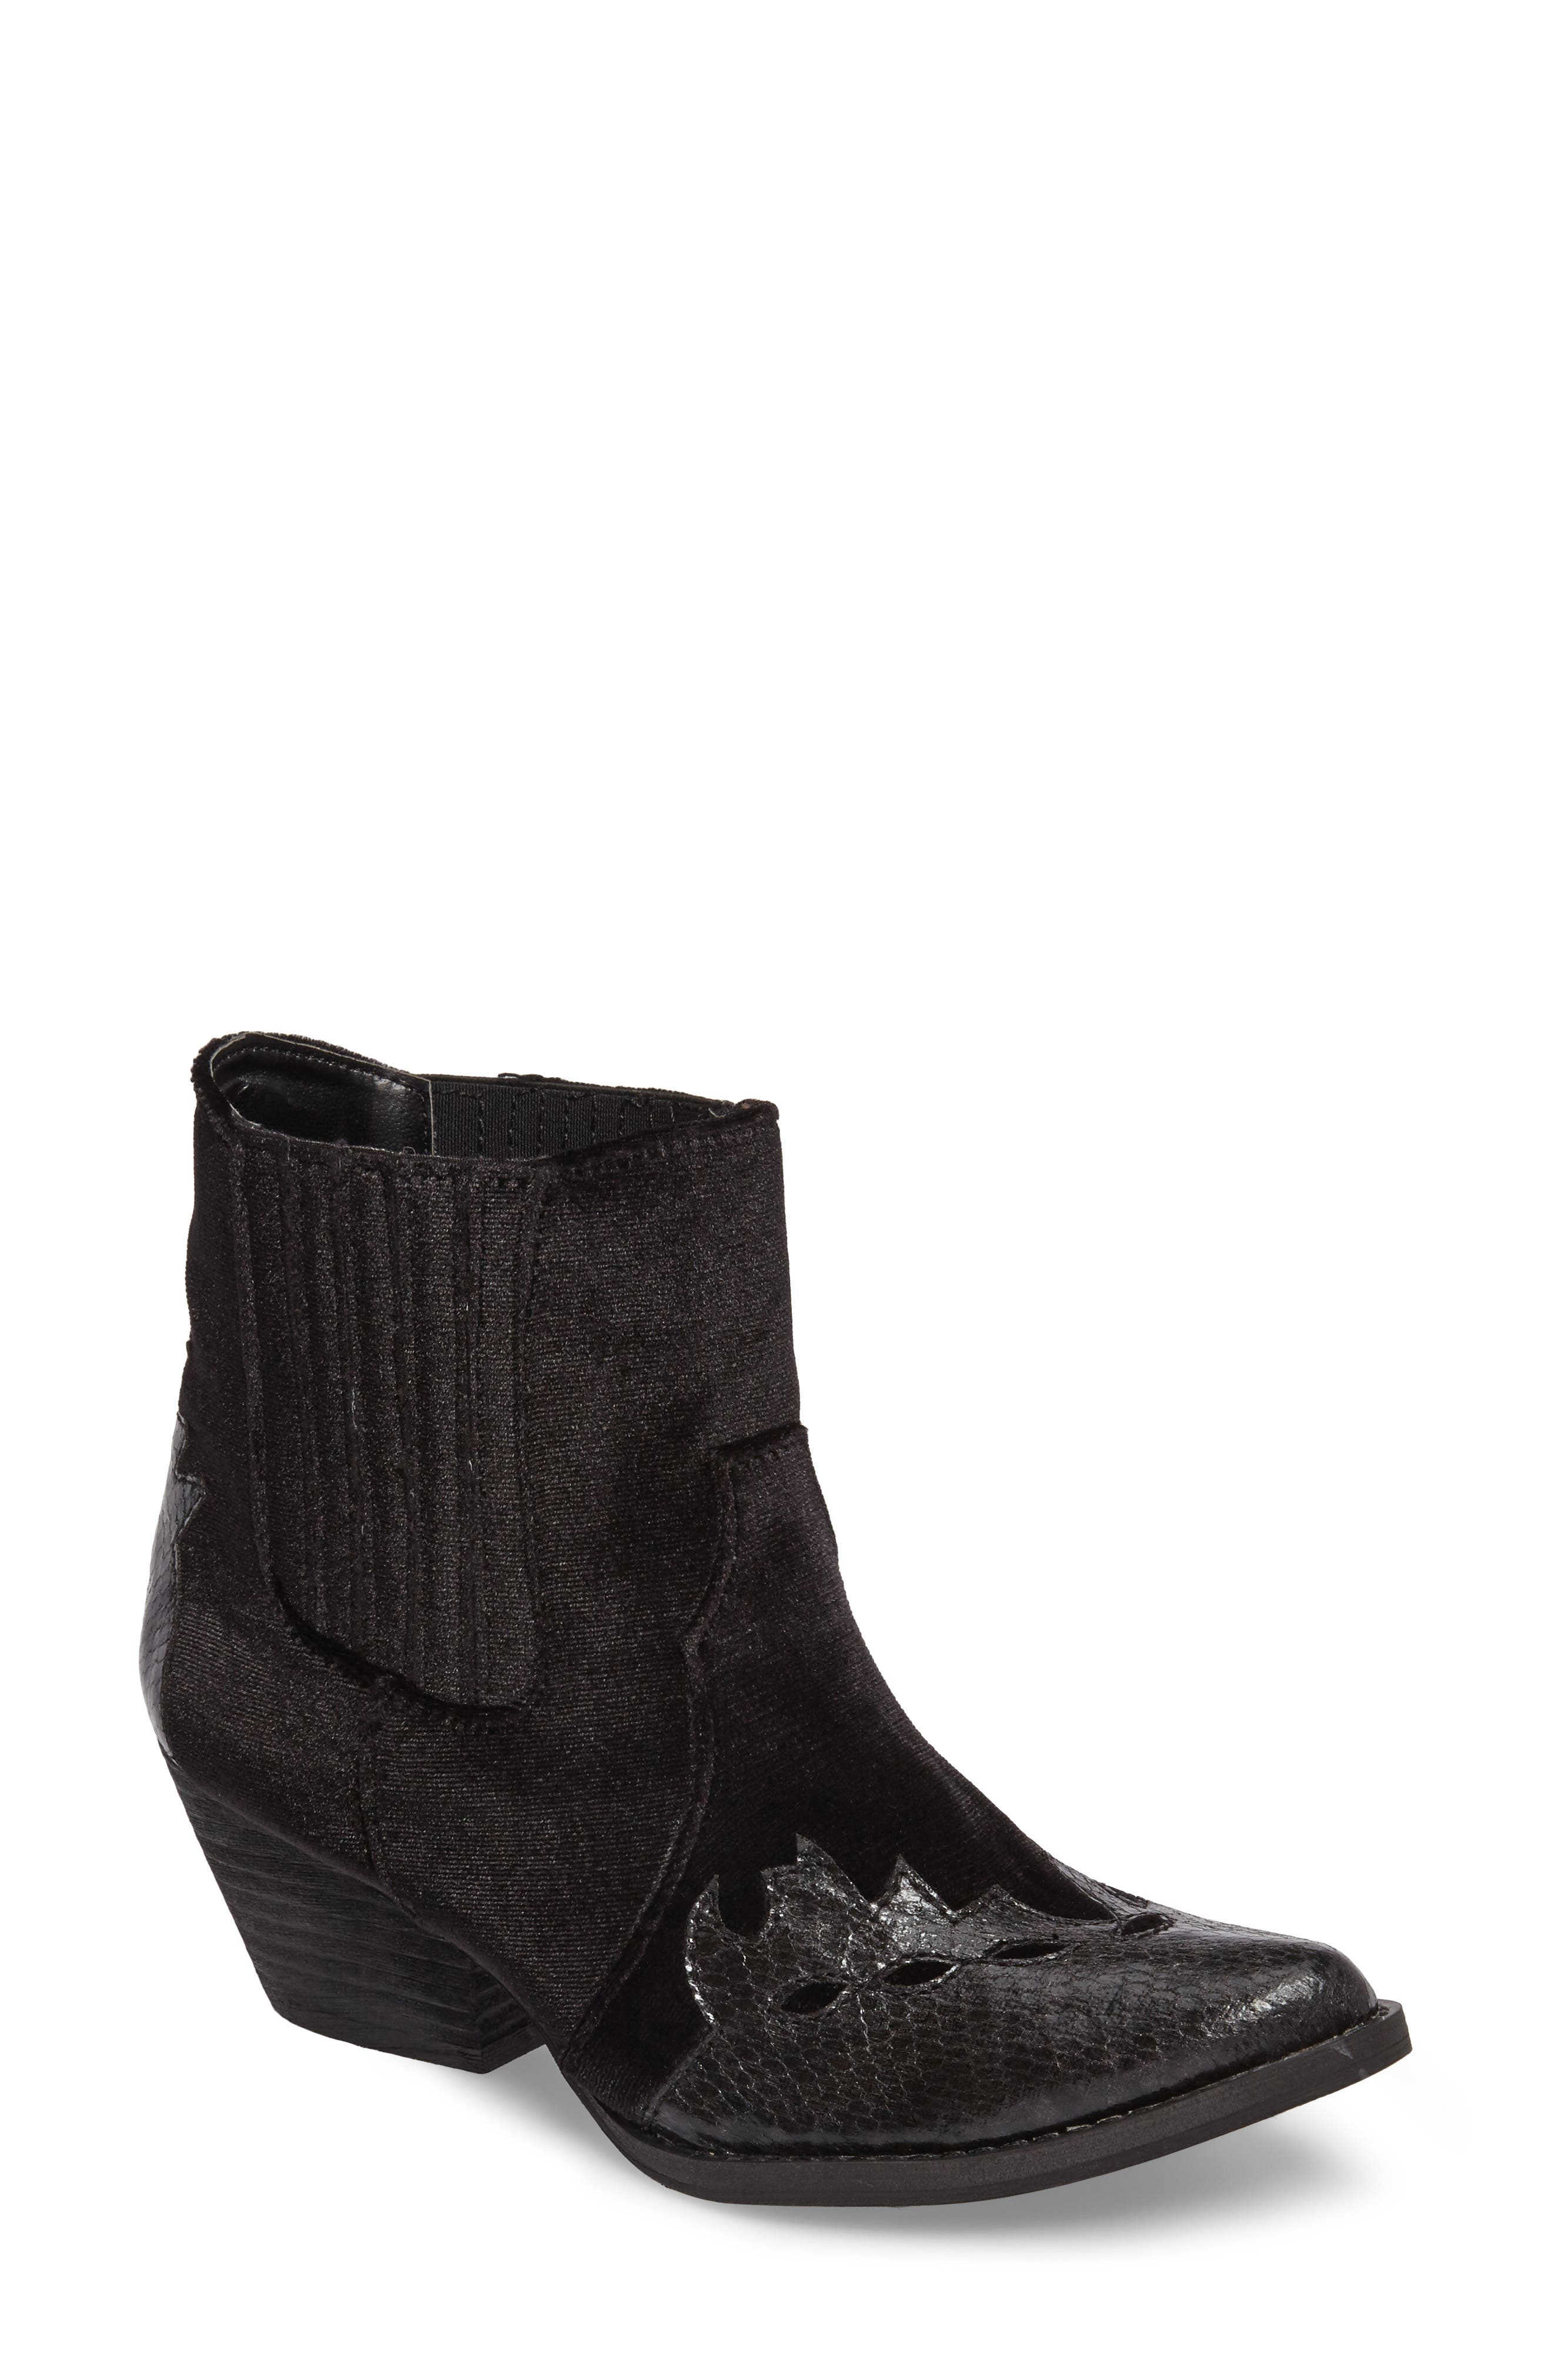 Sava Western Chelsea Bootie,                             Main thumbnail 1, color,                             001